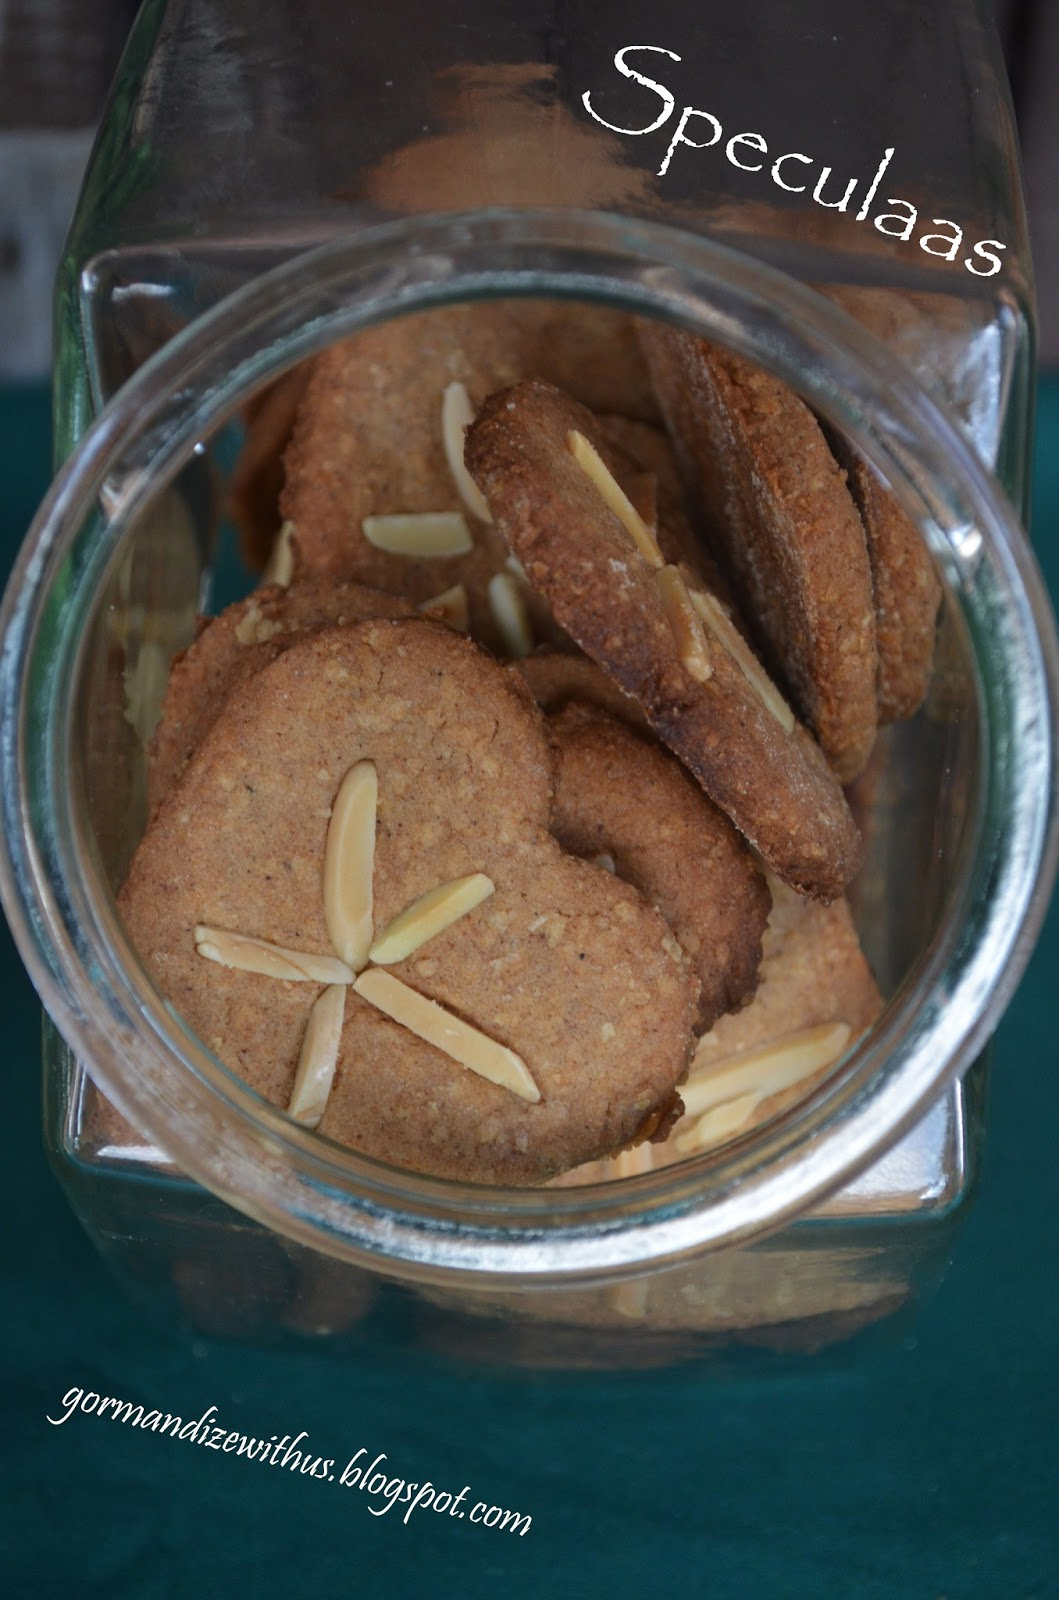 Gormandize: Speculaas - Dutch Spiced Biscuits